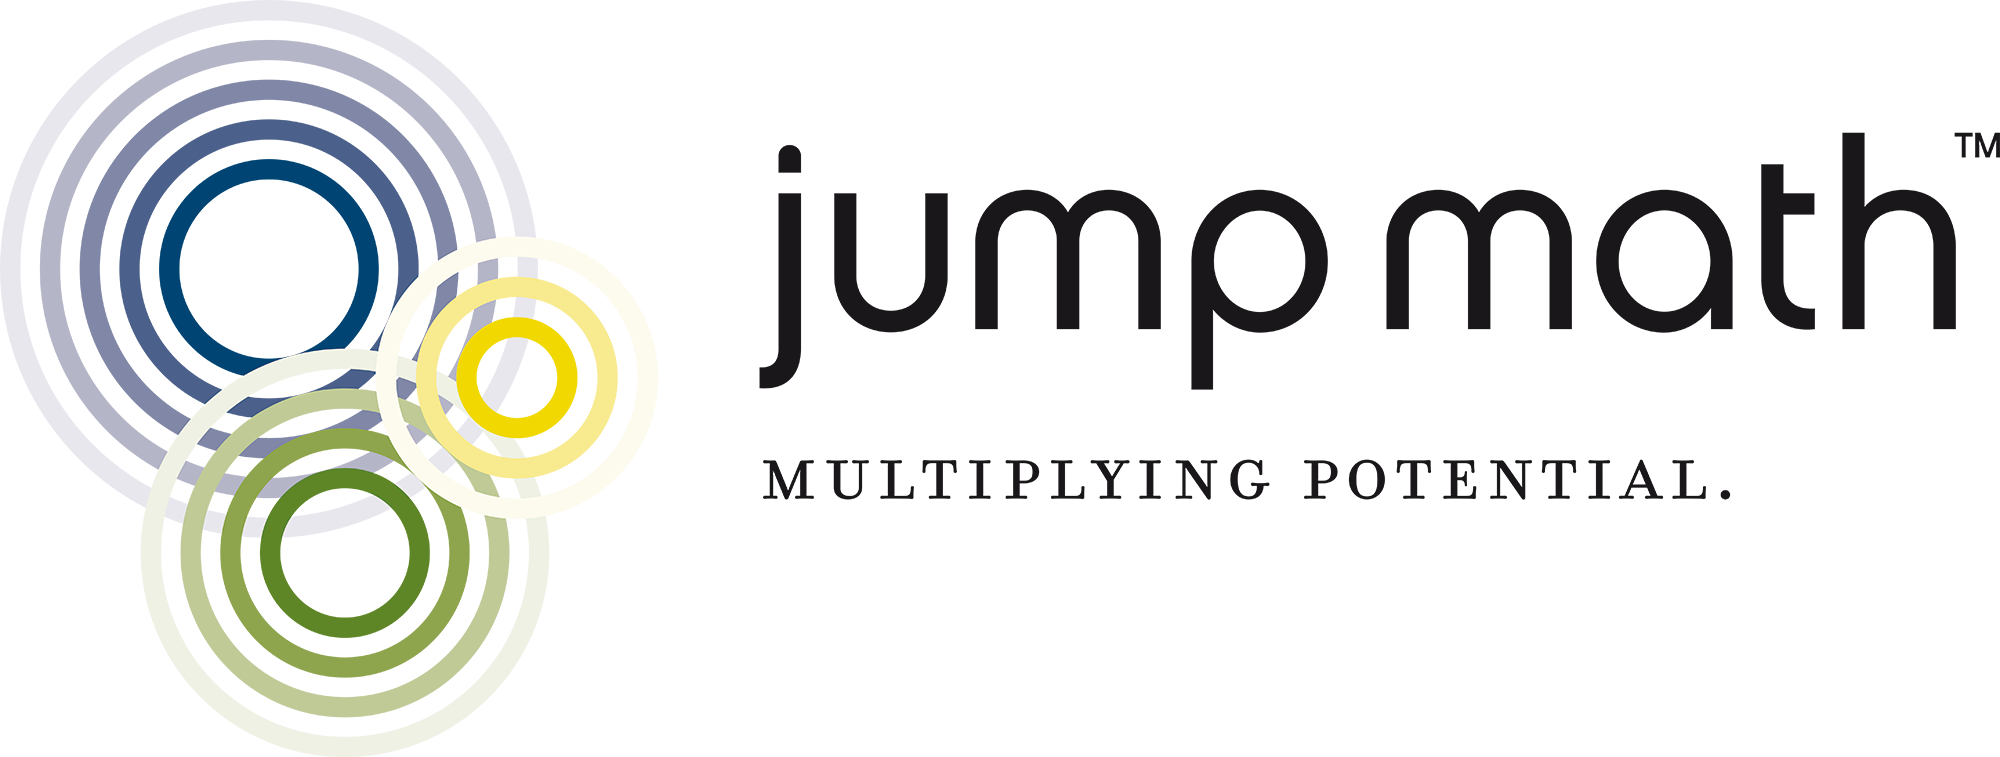 Jump Math circle logo with overlapping circles in blue, yellow and green and JUMP Math text